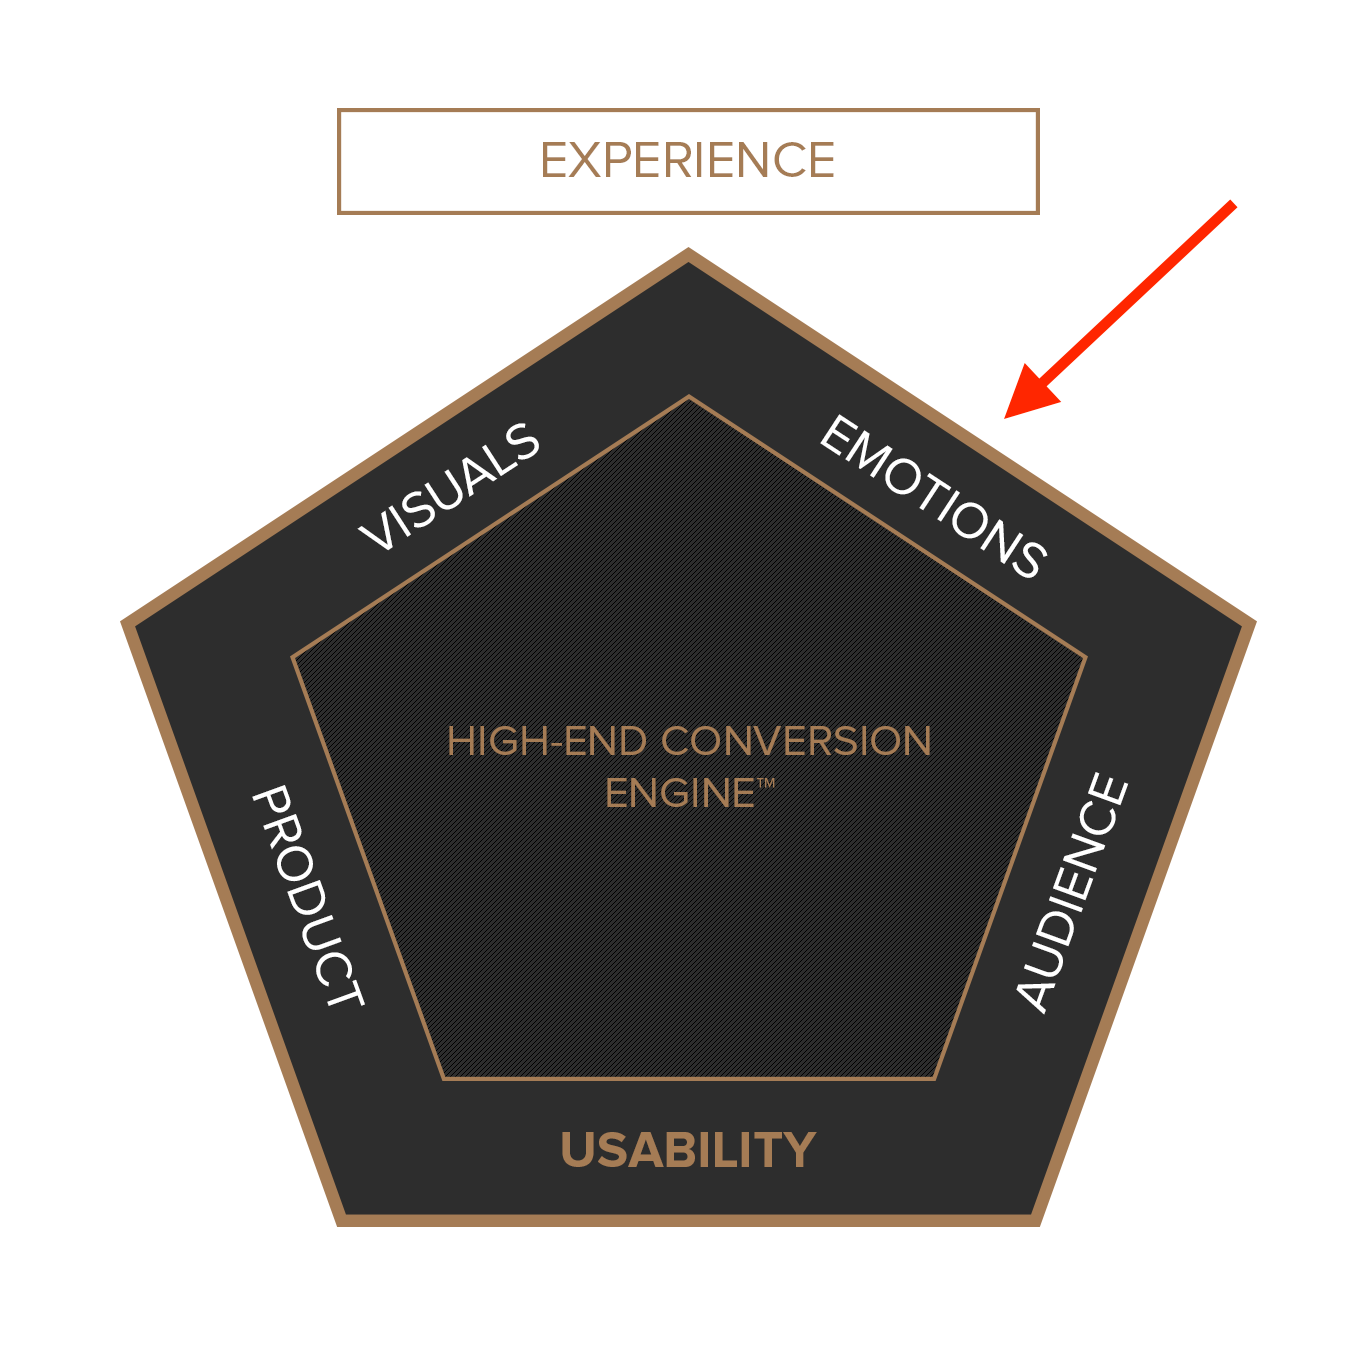 High-End Conversion Engine, How to target emotions